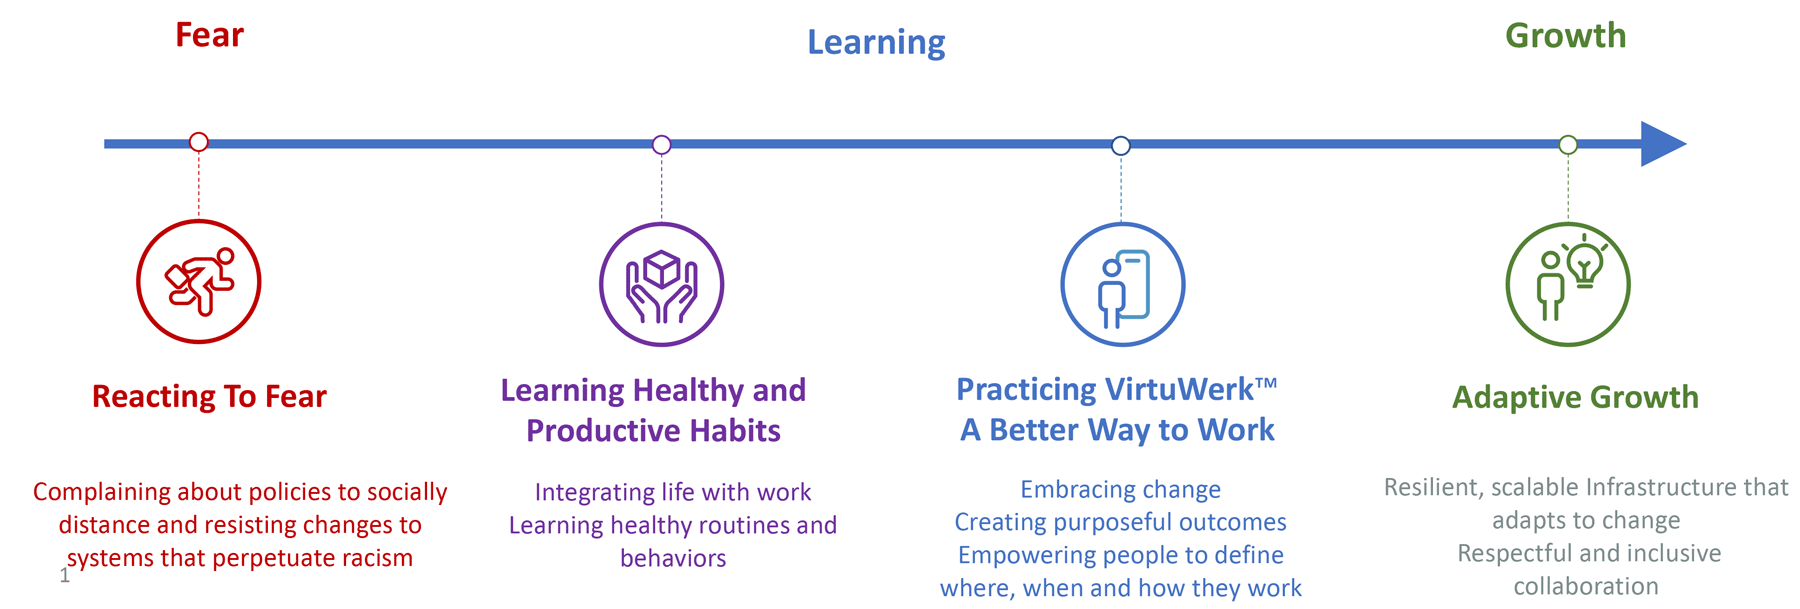 VirtuWerk-Shifting-from-Fear-to-Learning-chart